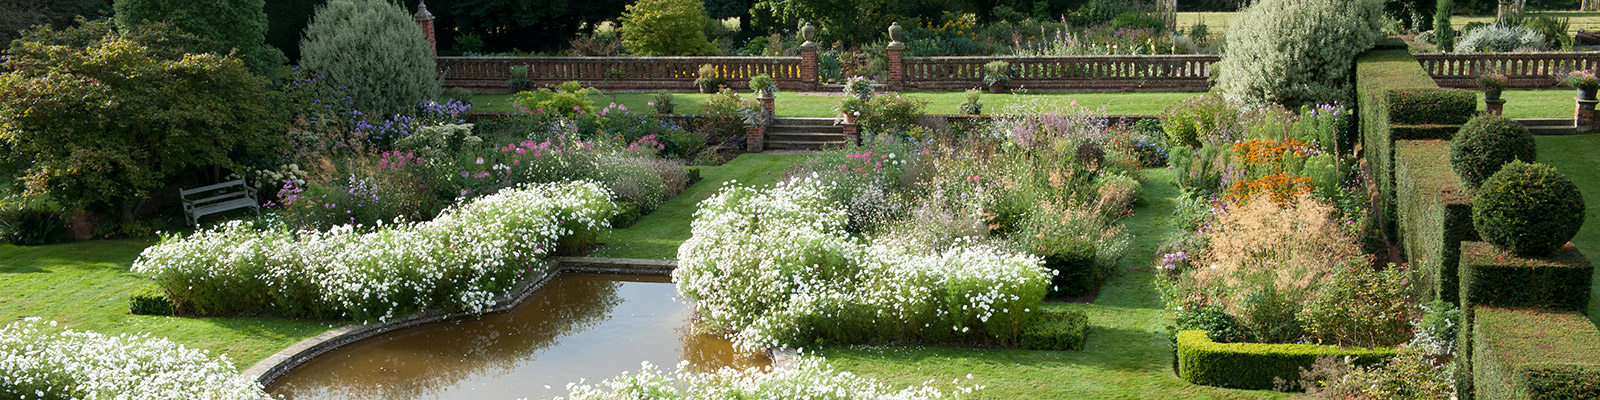 Doddington Place Gardens - The Sunken Garden